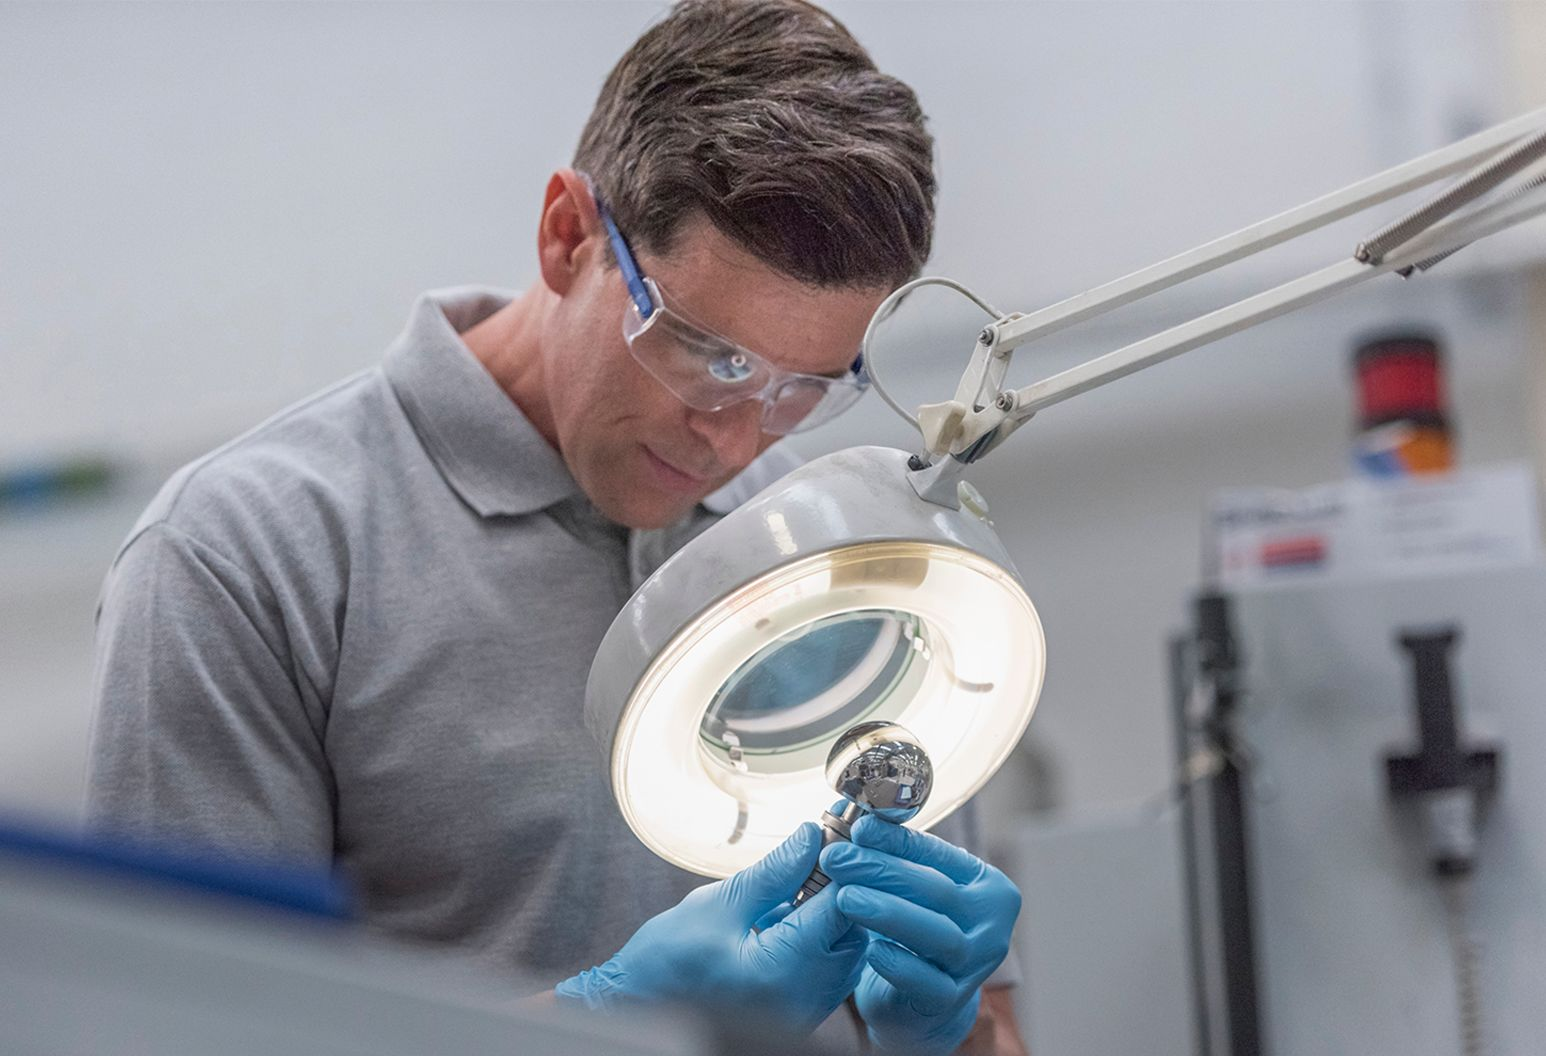 Man in grey shirt and safety glasses examining piece of technology under microscope